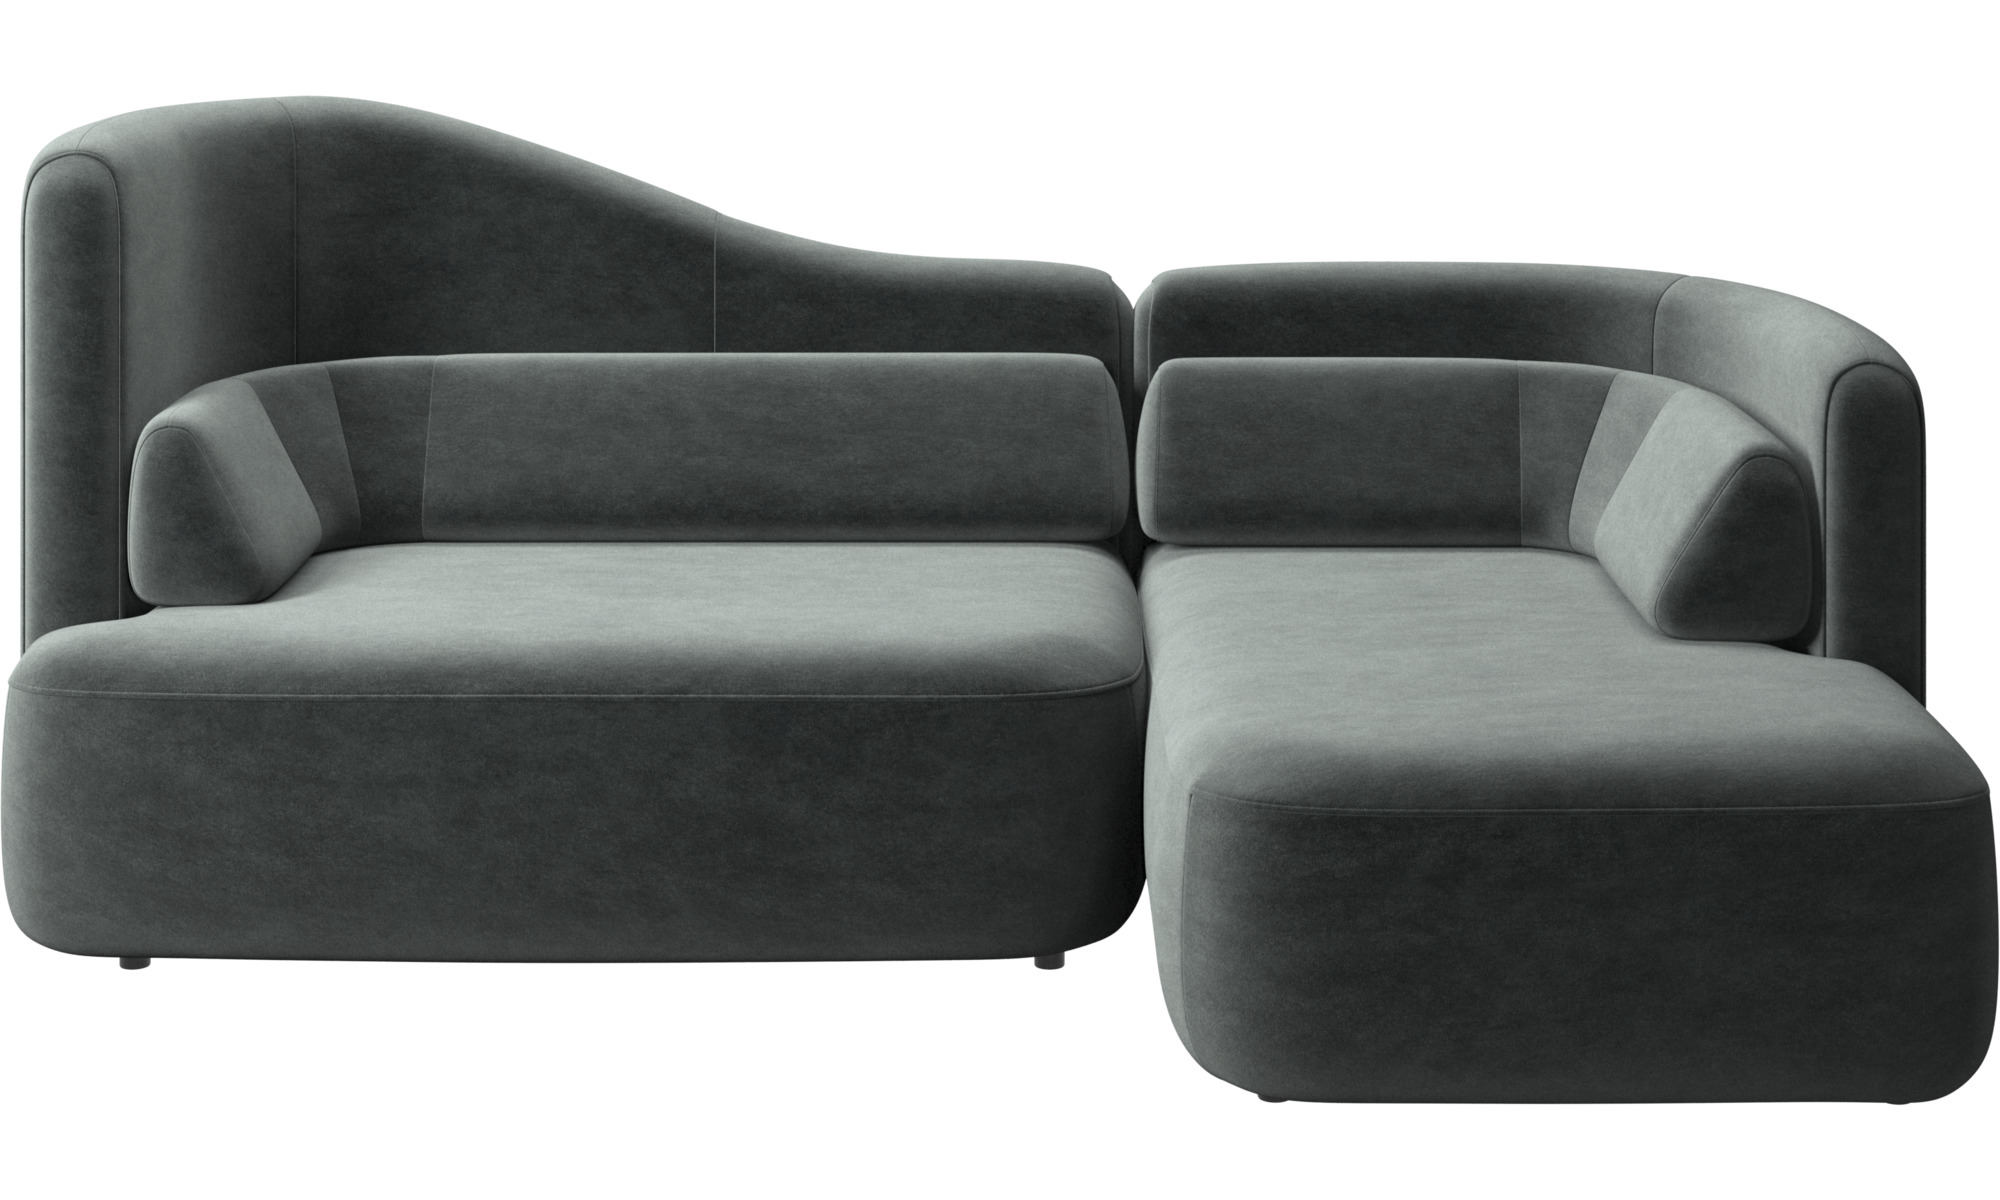 Modular Sofas Ottawa Sofa Green Fabric